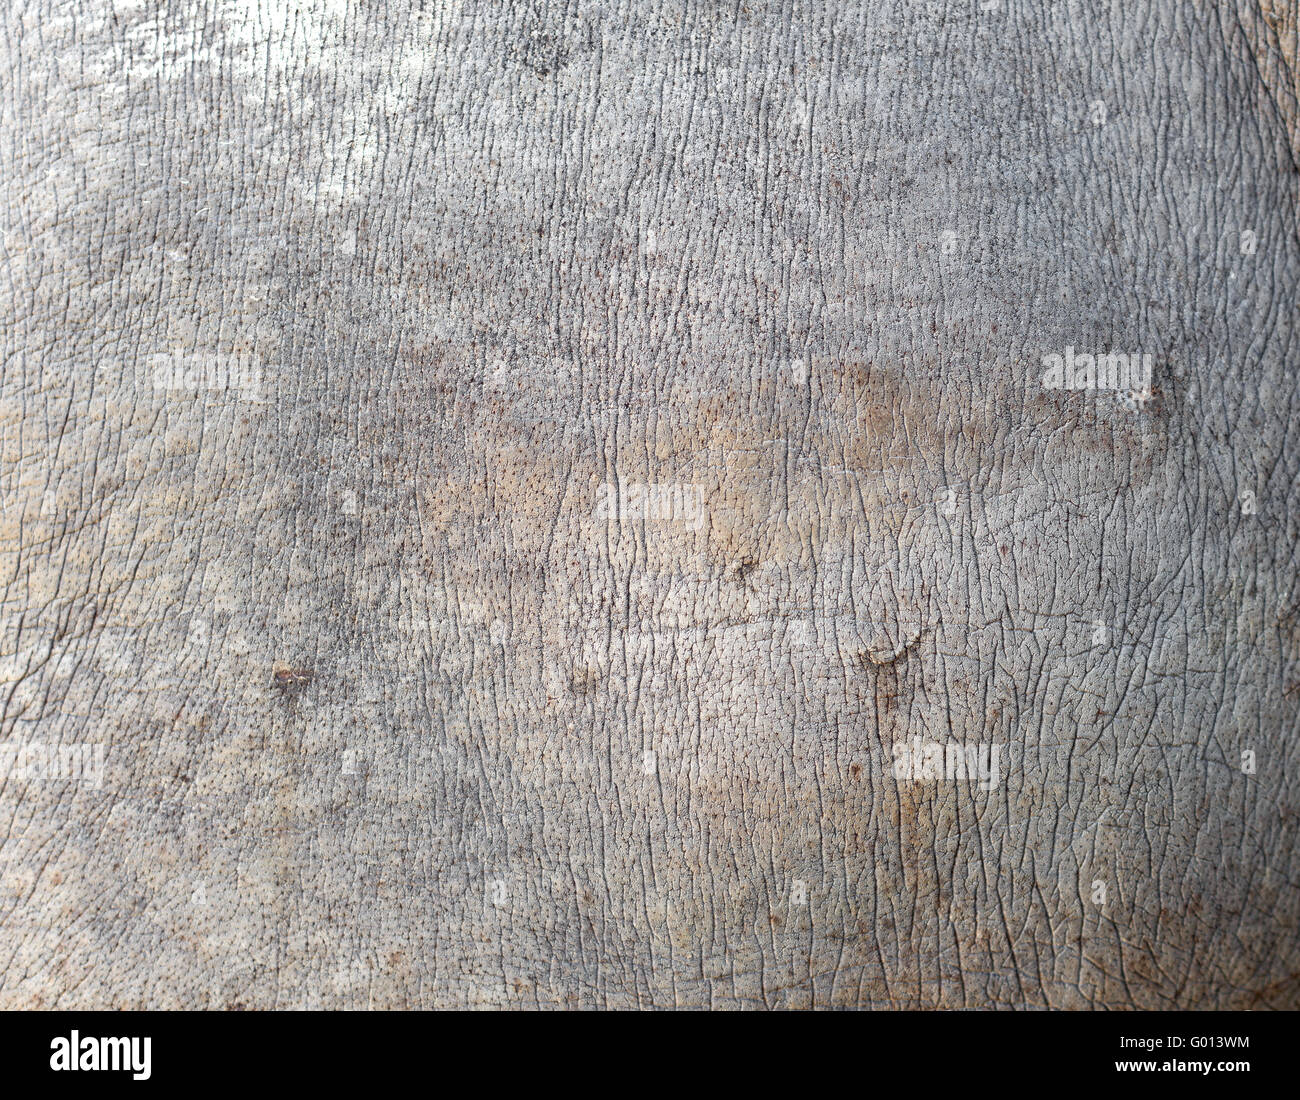 rhino skin texture rhino skin texture Stock Photo, Royalty ...